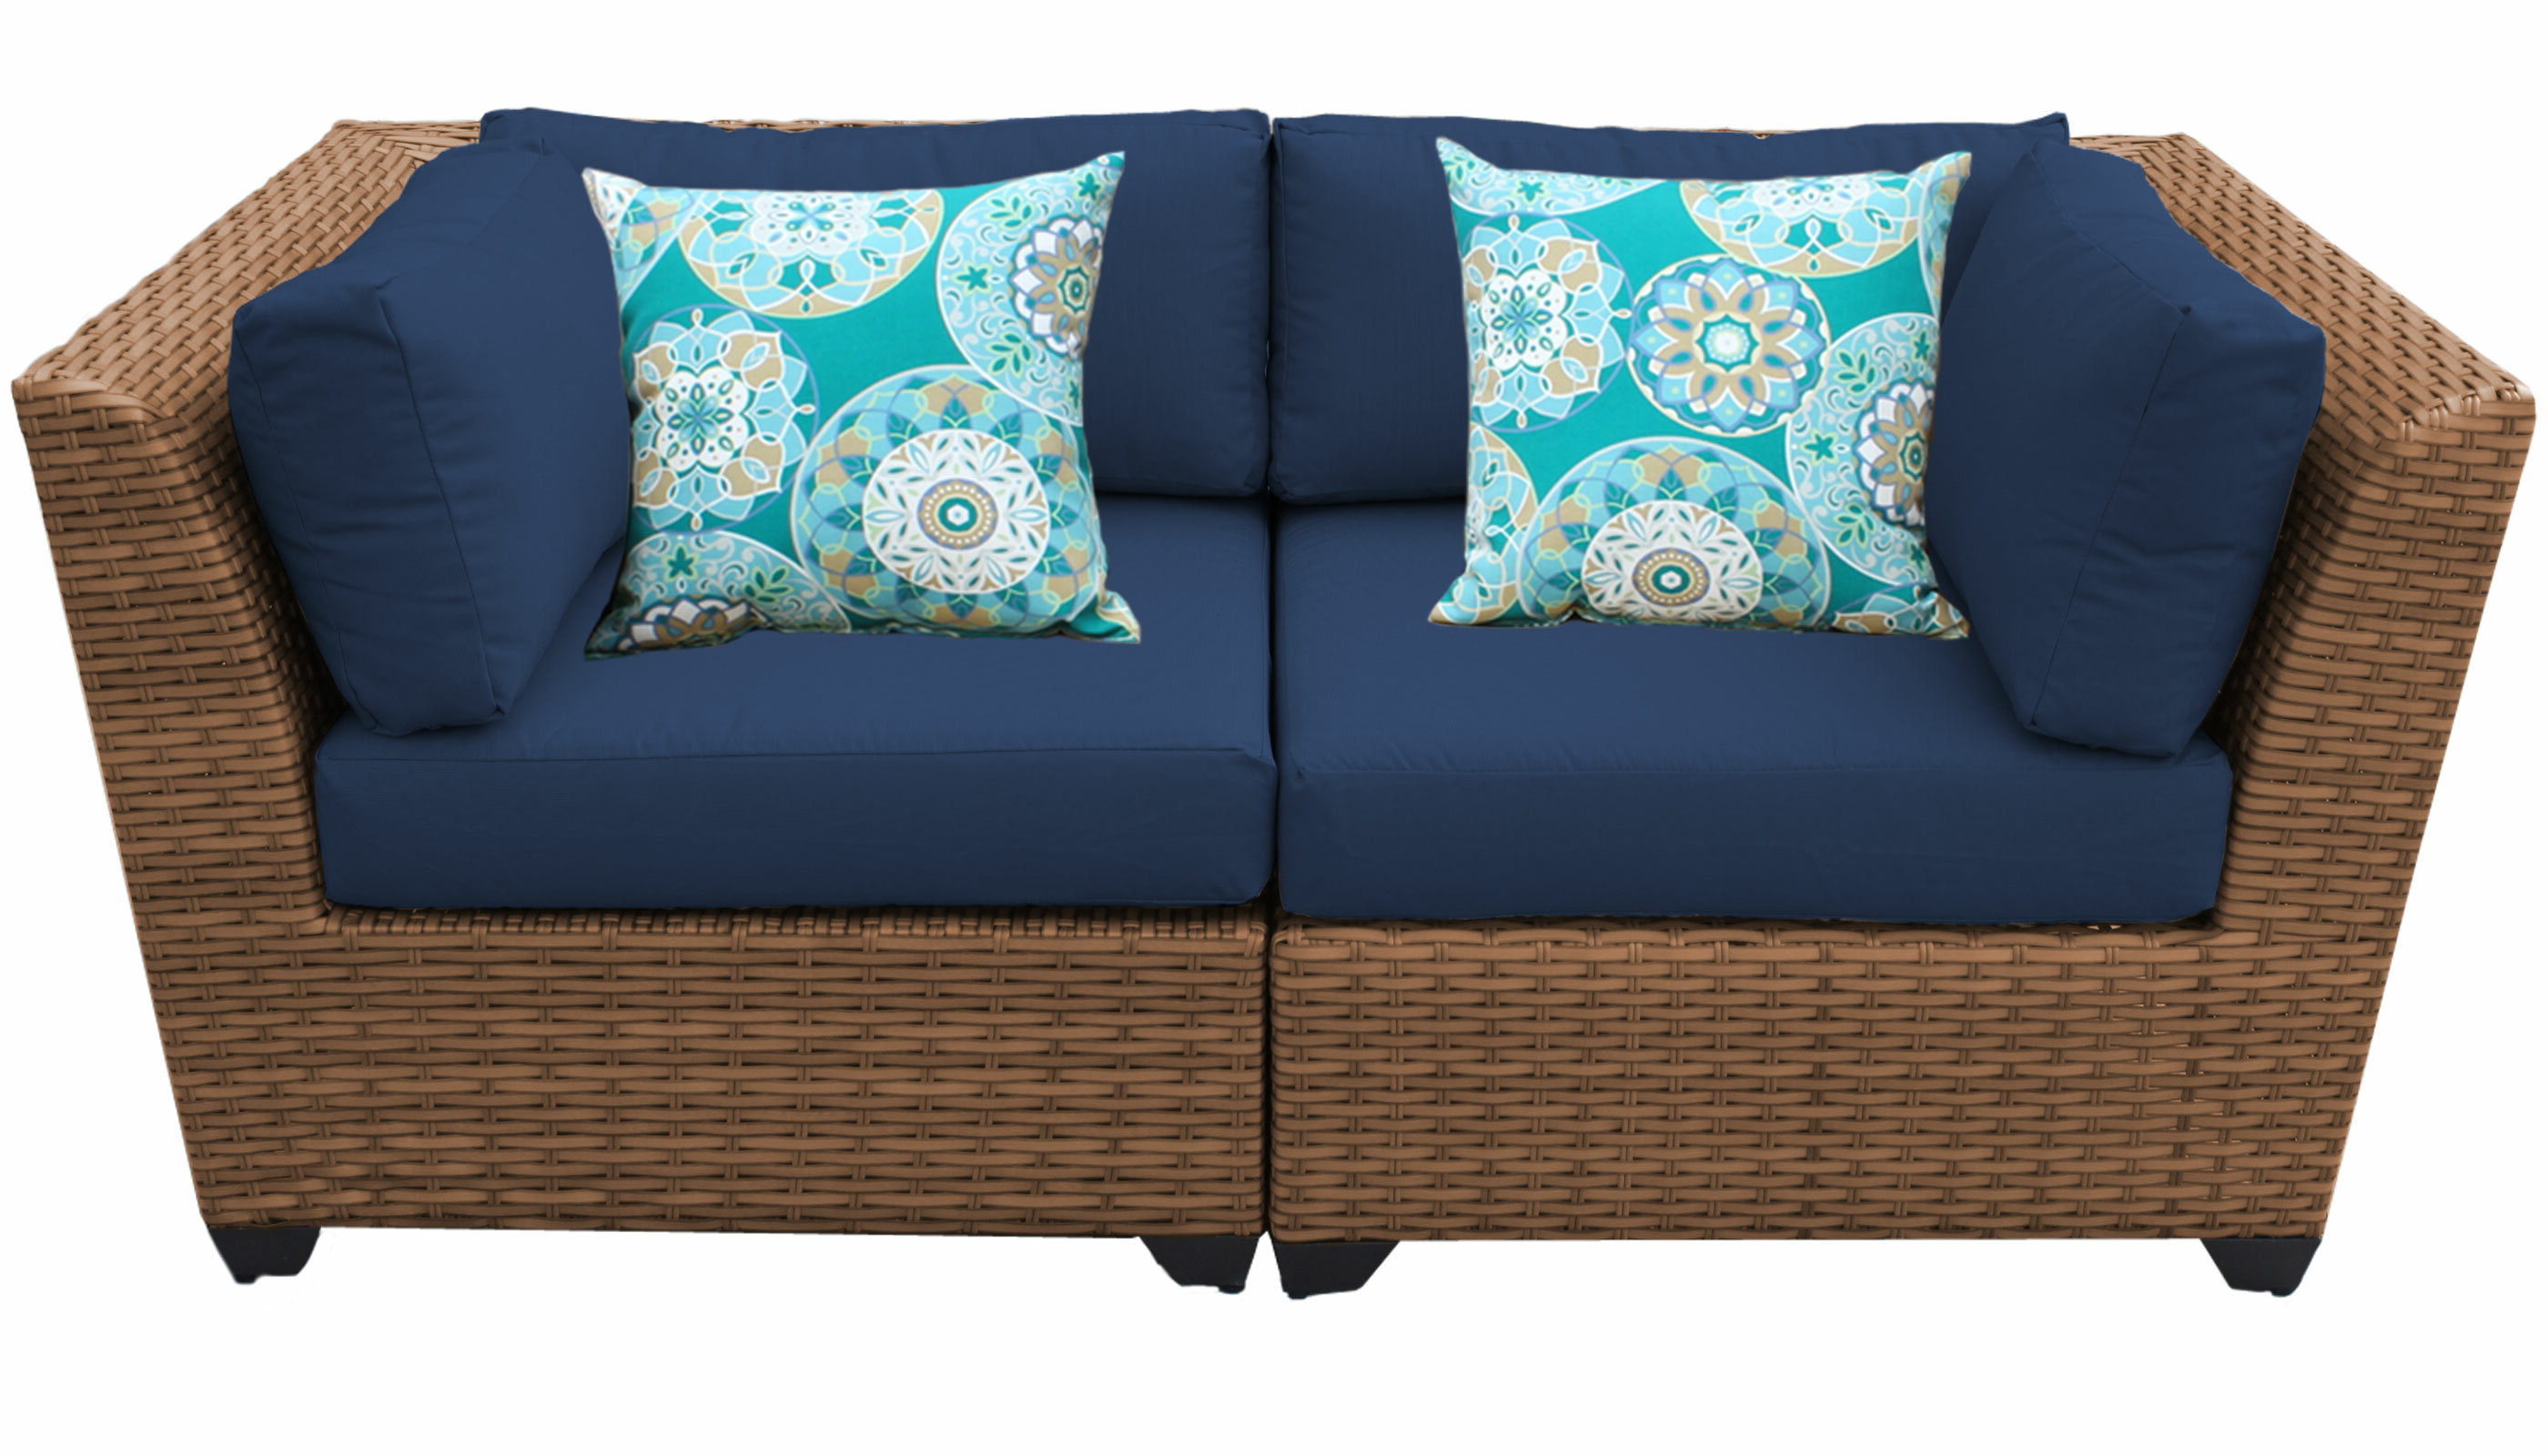 2019 Waterbury Loveseat With Cushions Inside Northridge Loveseats With Cushions (View 1 of 20)